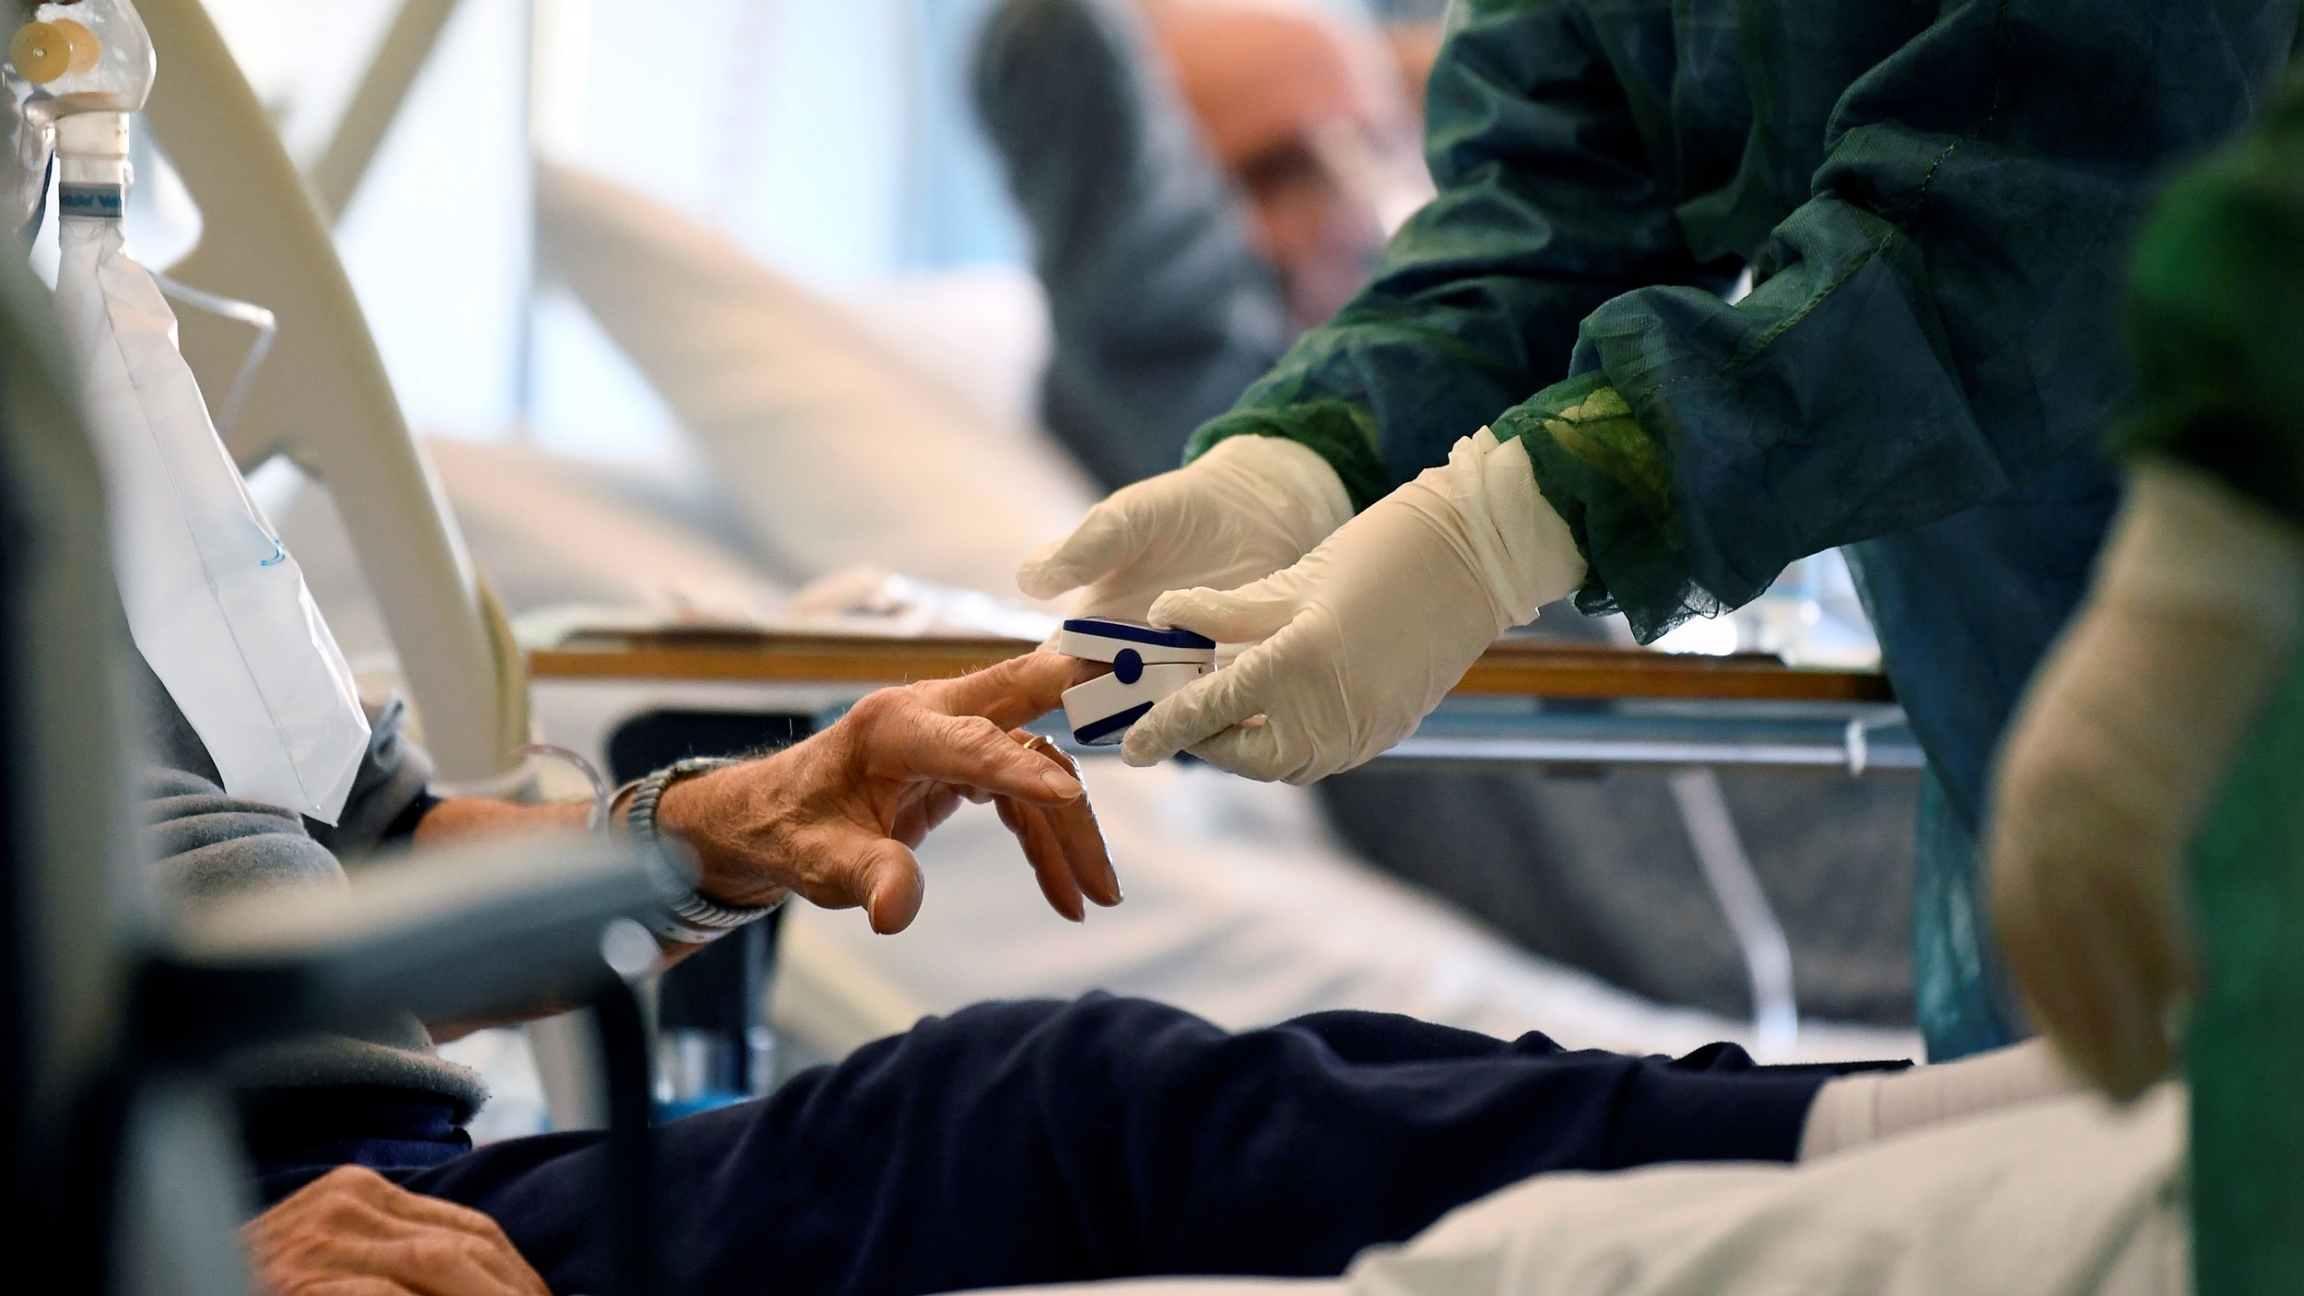 The hands of a medical professional are shown wearing protective gloves and putting a device on a patient's finger.